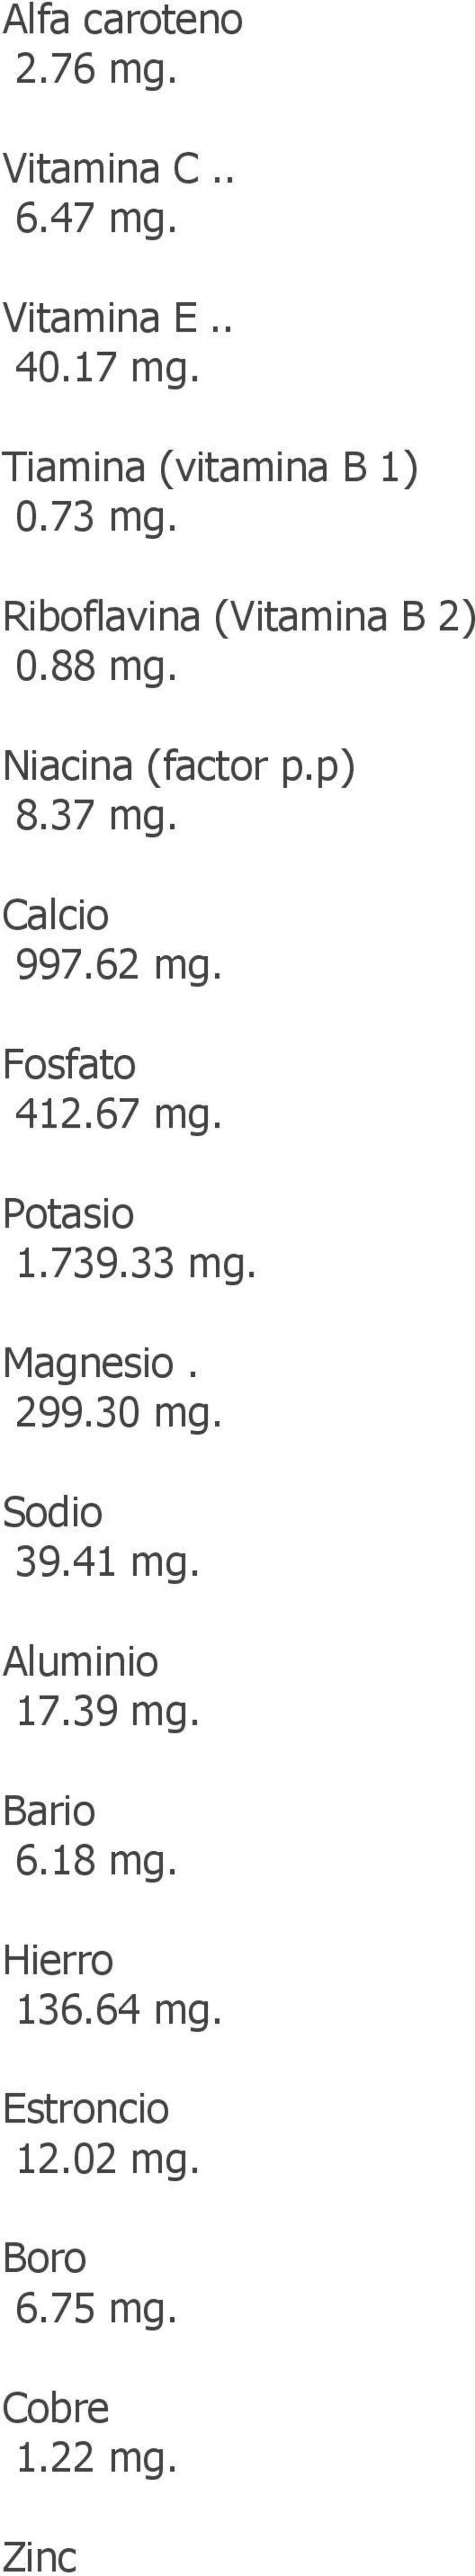 37 mg. Calcio 997.62 mg. Fosfato 412.67 mg. Potasio 1.739.33 mg. Magnesio. 299.30 mg.